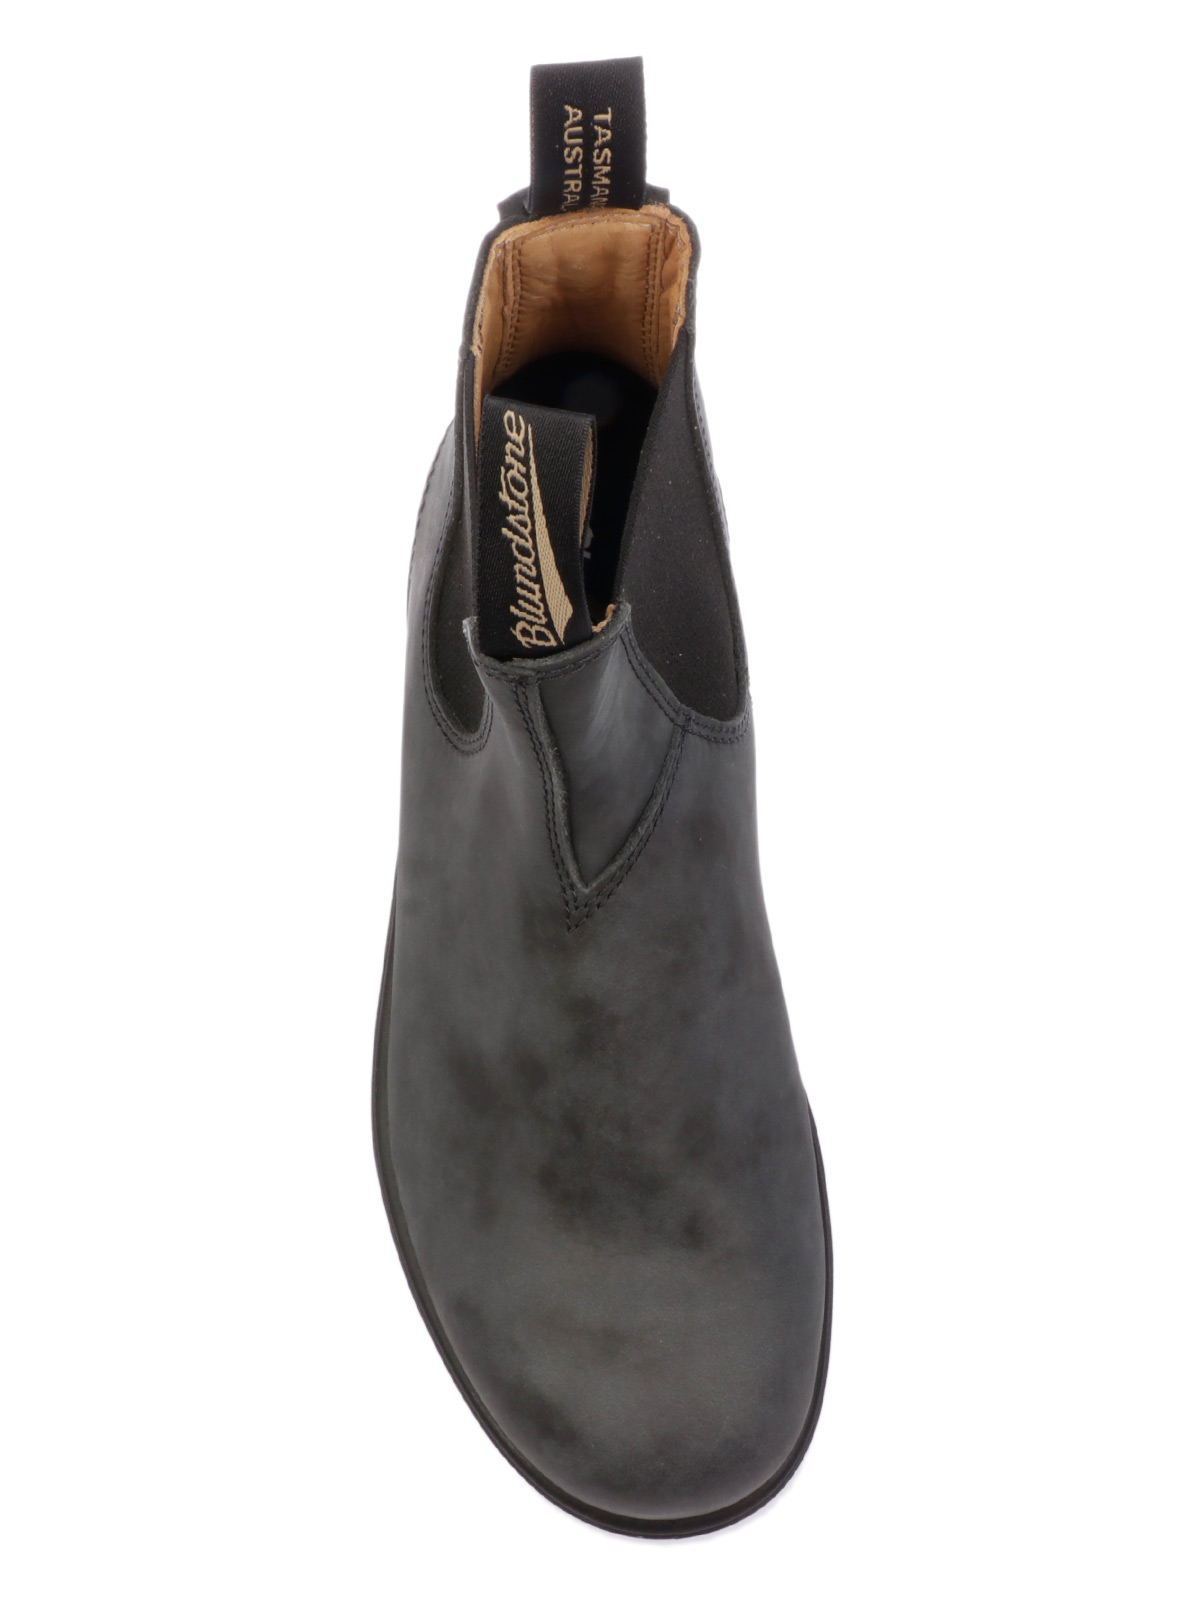 5226e54b2739 Blundstone Anthracite Related Keywords   Suggestions - Blundstone ...